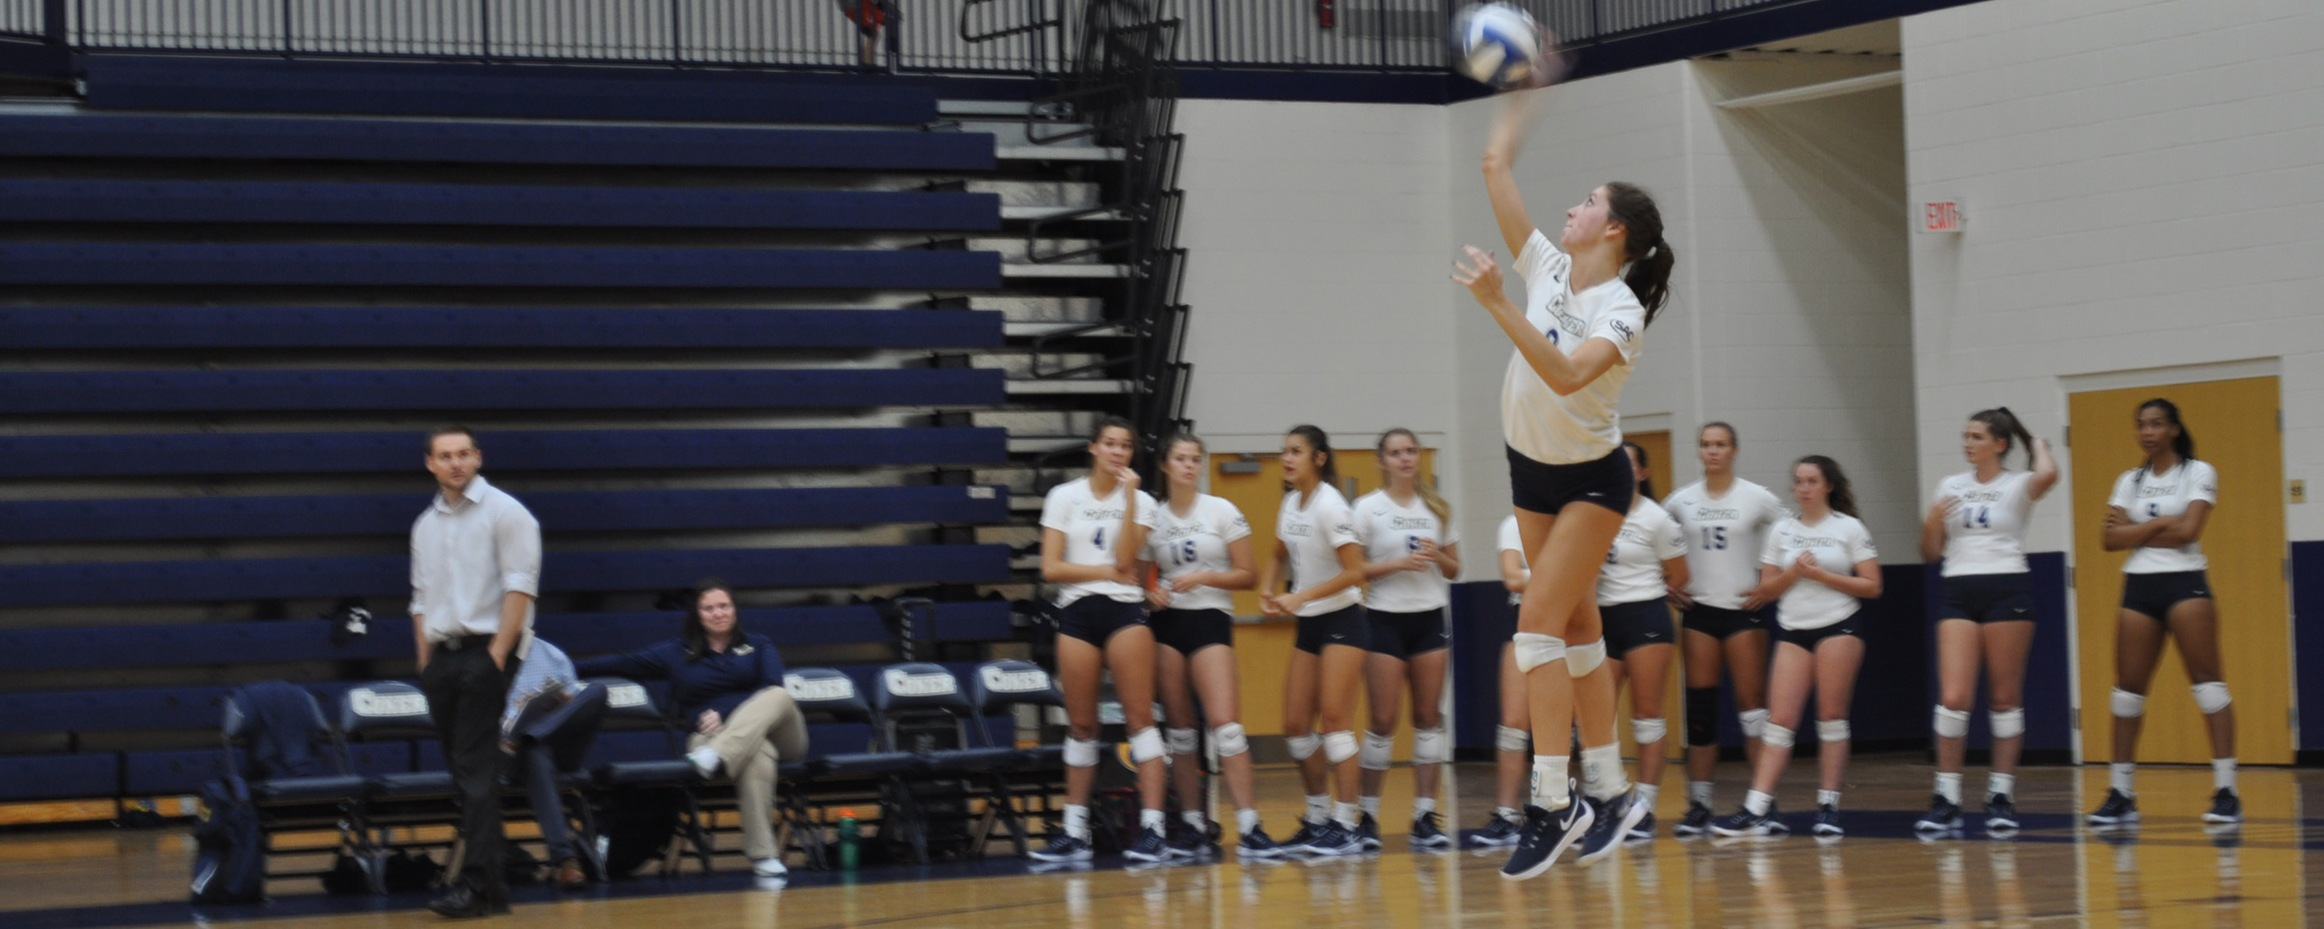 Cobras Fall Against Mars Hill in Conference Action on Saturday